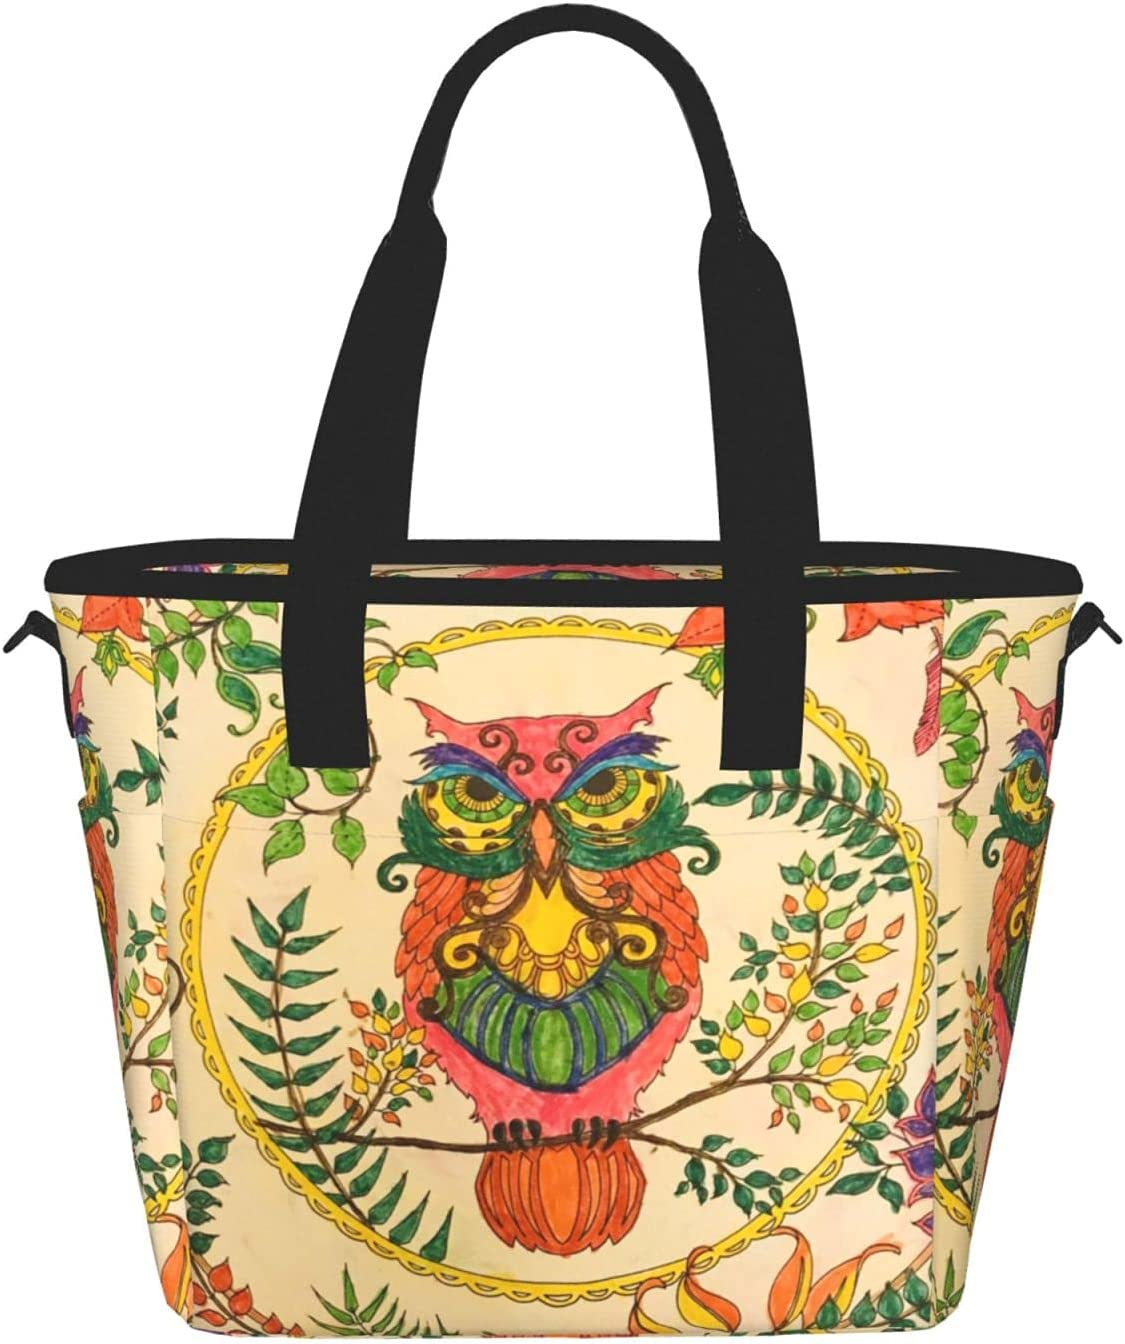 Owl Super Special SALE held Beliefsprinting excellence Women'S Lunch Fashion Bag Portable Meal